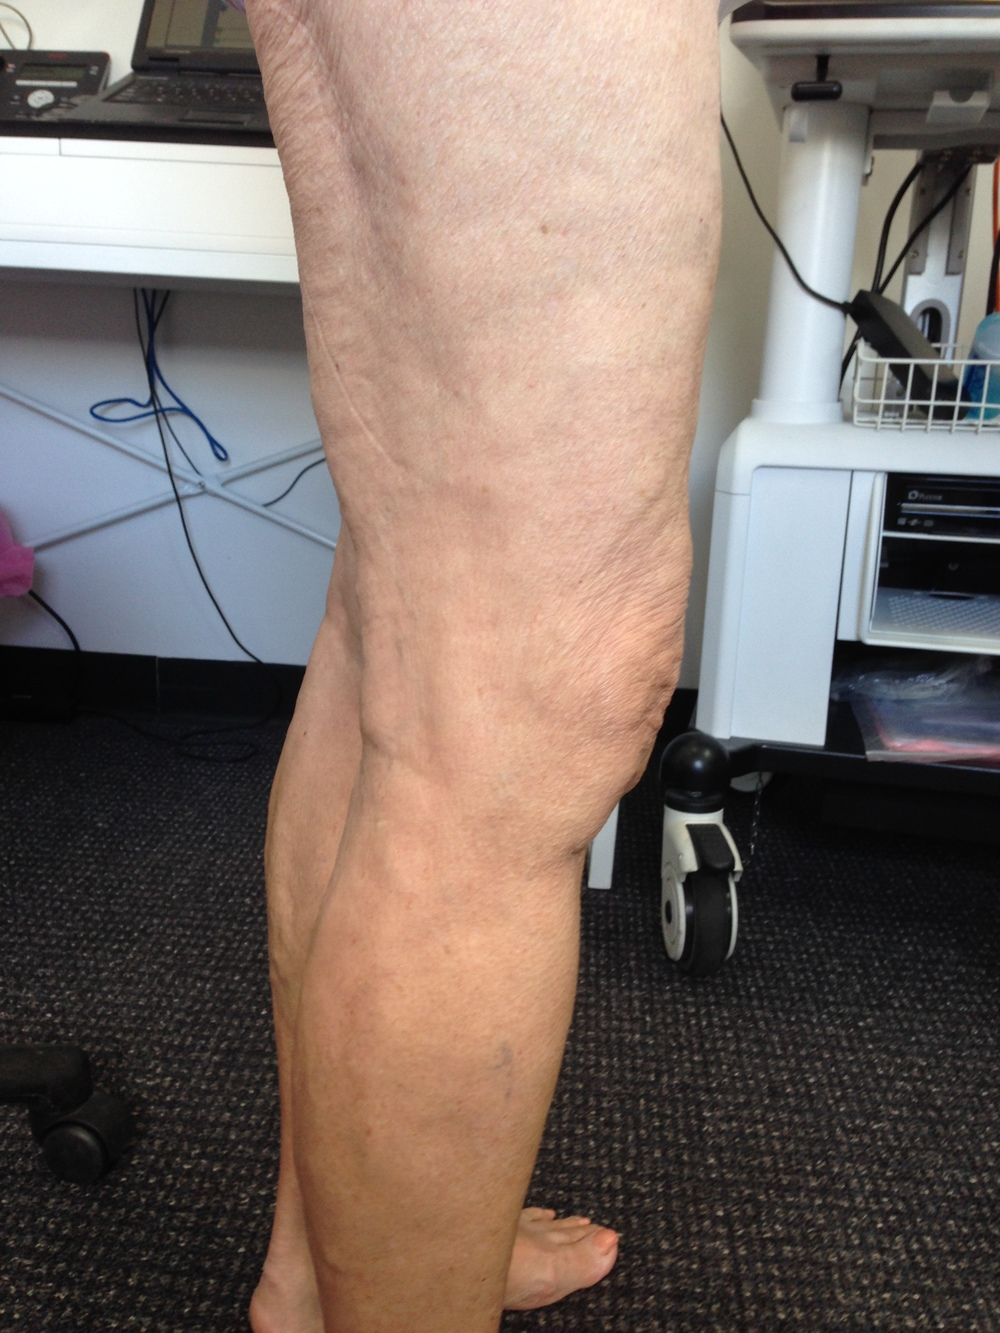 Treatment: Ultrasound Guided Sclerotherapy. Results at 6 months.